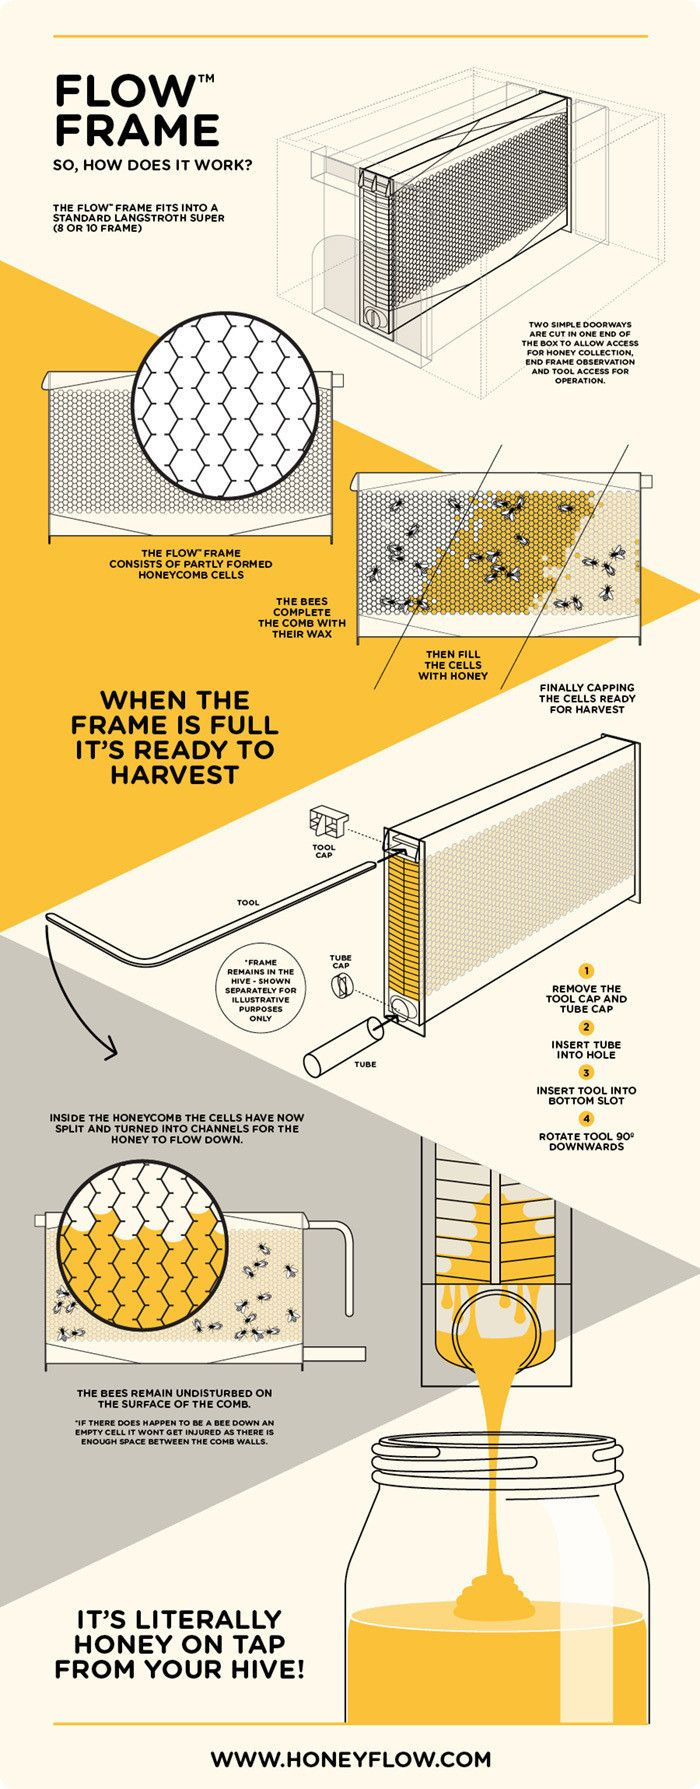 Where to buy Flow™ Hives & Frames